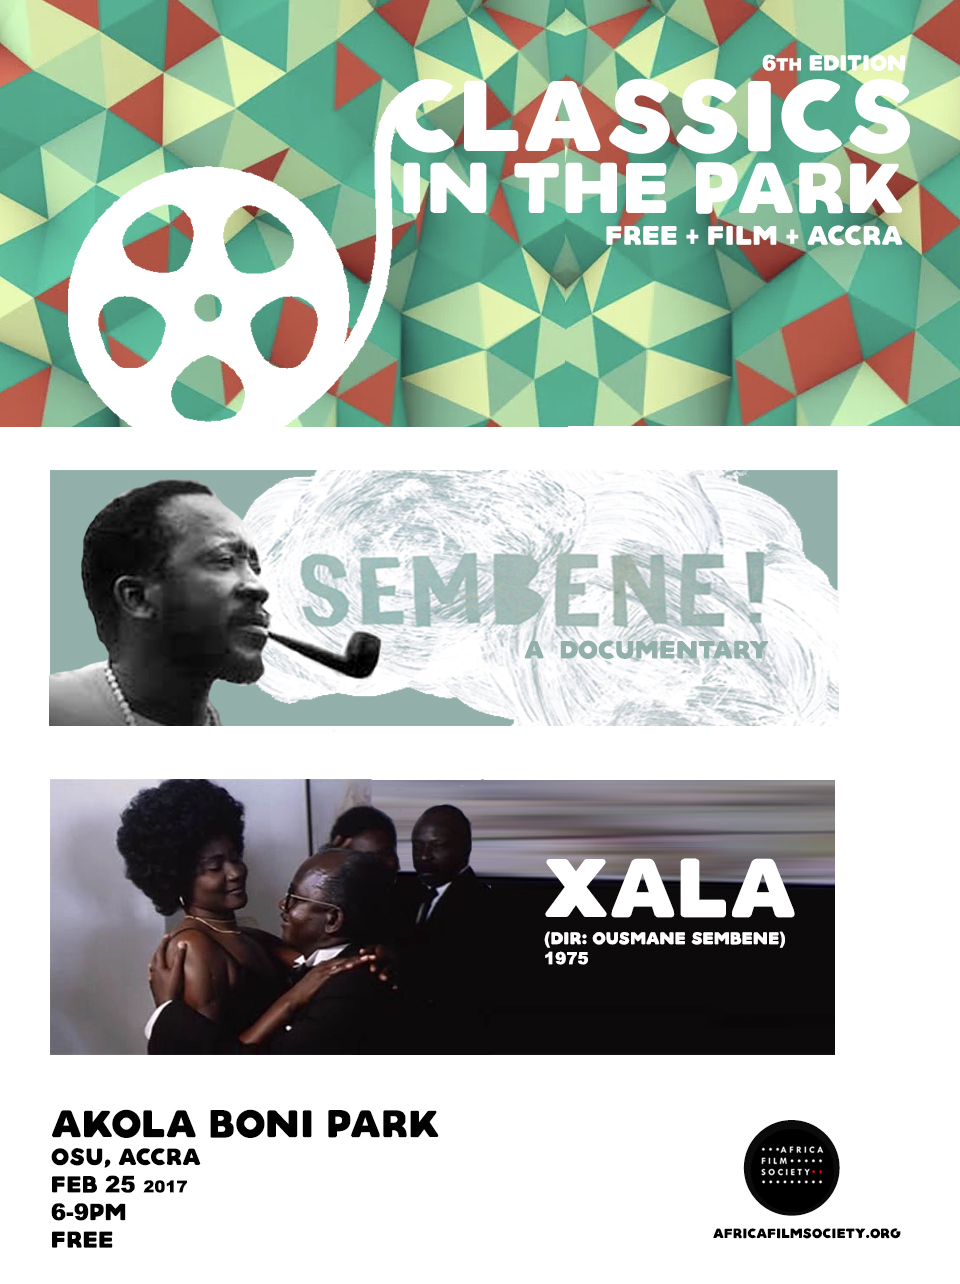 6th Classics in the Park Pays Tribute to Filmmaker Ousmane Sembène    Africa Film Society's free outdoor film showcase 'Classics in the Park' will pay tribute to legendary Senegalese filmmaker, Ousmane Sembène for its 6th Edition.  Slated for February 25th, 6pm at Akola Boni Park in Osu, Nyaniba Estate, this edition aimsto familiarize Ghanaian film audience with the works of the man considered to befather of African cinema through his 1975 film Xala and 2015 biographical documentary film Sembène!.   Largely self-taught, Sembène was a prolific writer and director.  His films and literature provide candid portrayal of Colonialism and the fallings of religion and the new African bourgeoisie.    His first feature film, Black Girl (1966) is a critical account of the isolation of a young Senegalese domestic servant working with an affluent French family in Antibes.    In Xala (1975), Semebène takes on the new African bourgeoisie in a biting satire about a westernized black bourgeoisie rendered impotent on the day of his wedding to his third wife. It was screened at the Moscow International Film Festival in 1975 and was ranked among 'The 100 Best Films of World Cinema in 2010 by the Empire Magazine.   Sembene was a member and co-founder of the Senegalese Association of filmmakers and the Pan African Federation of Filmmakers (FEPACI). He was a jury member at Cannes in 1967, Berlin (1977) and Venice (1983).His film, Moolaade (2002) won the Certain Regard prize in Cannes in 2004, subsequently becoming the first African director to hold a leçon de cinèma there.  He died in June, 2007 at the age of 84.  CLASSICS IN THE PARK / FEB 25 / 6pm / AKOLA BONI PARK, OSU ACCRA